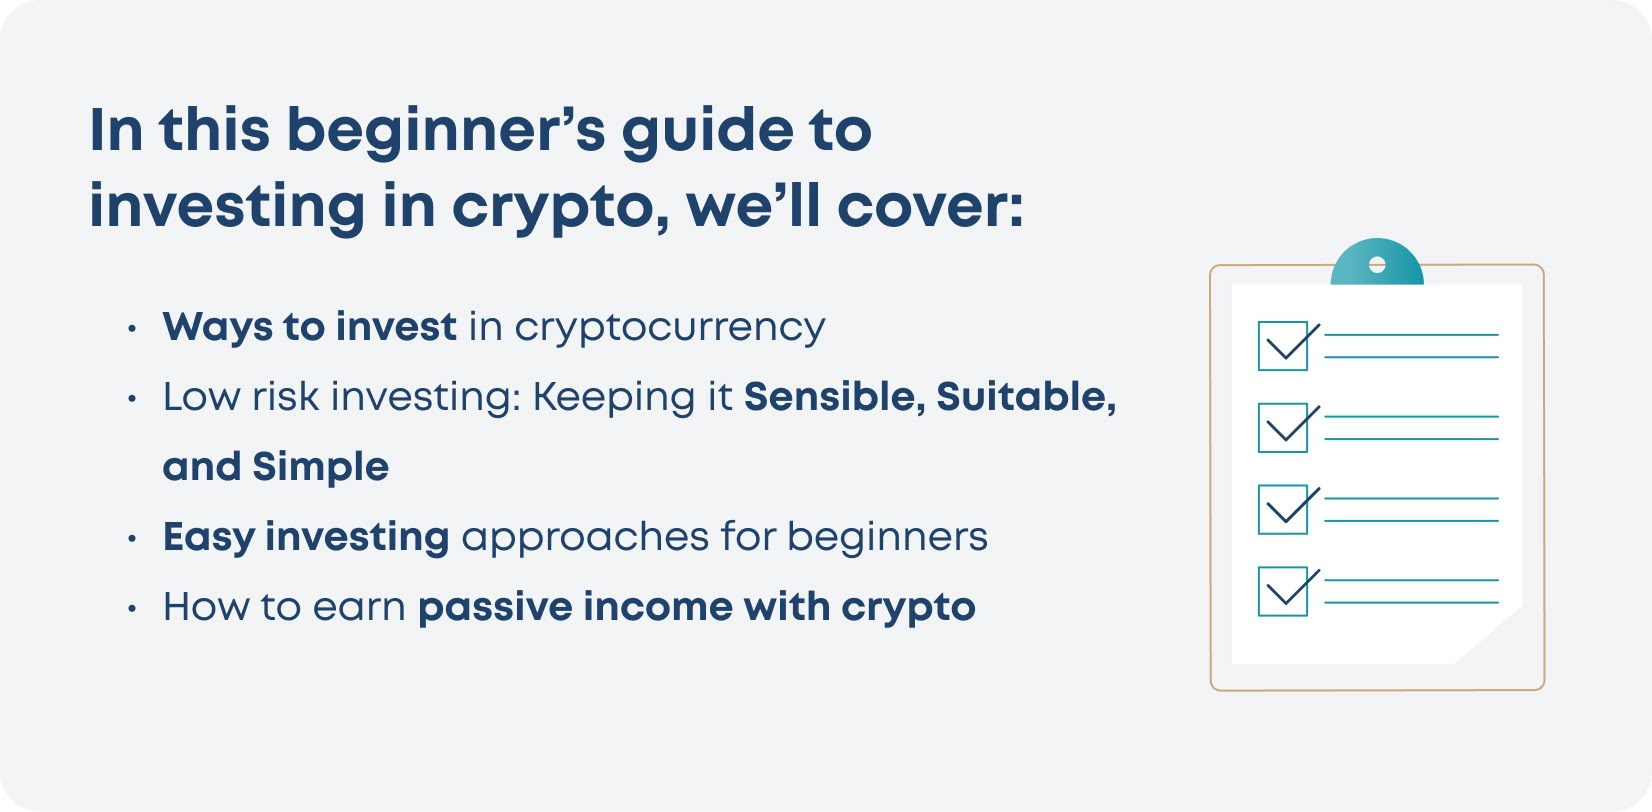 Learn how to invest in crypto easily